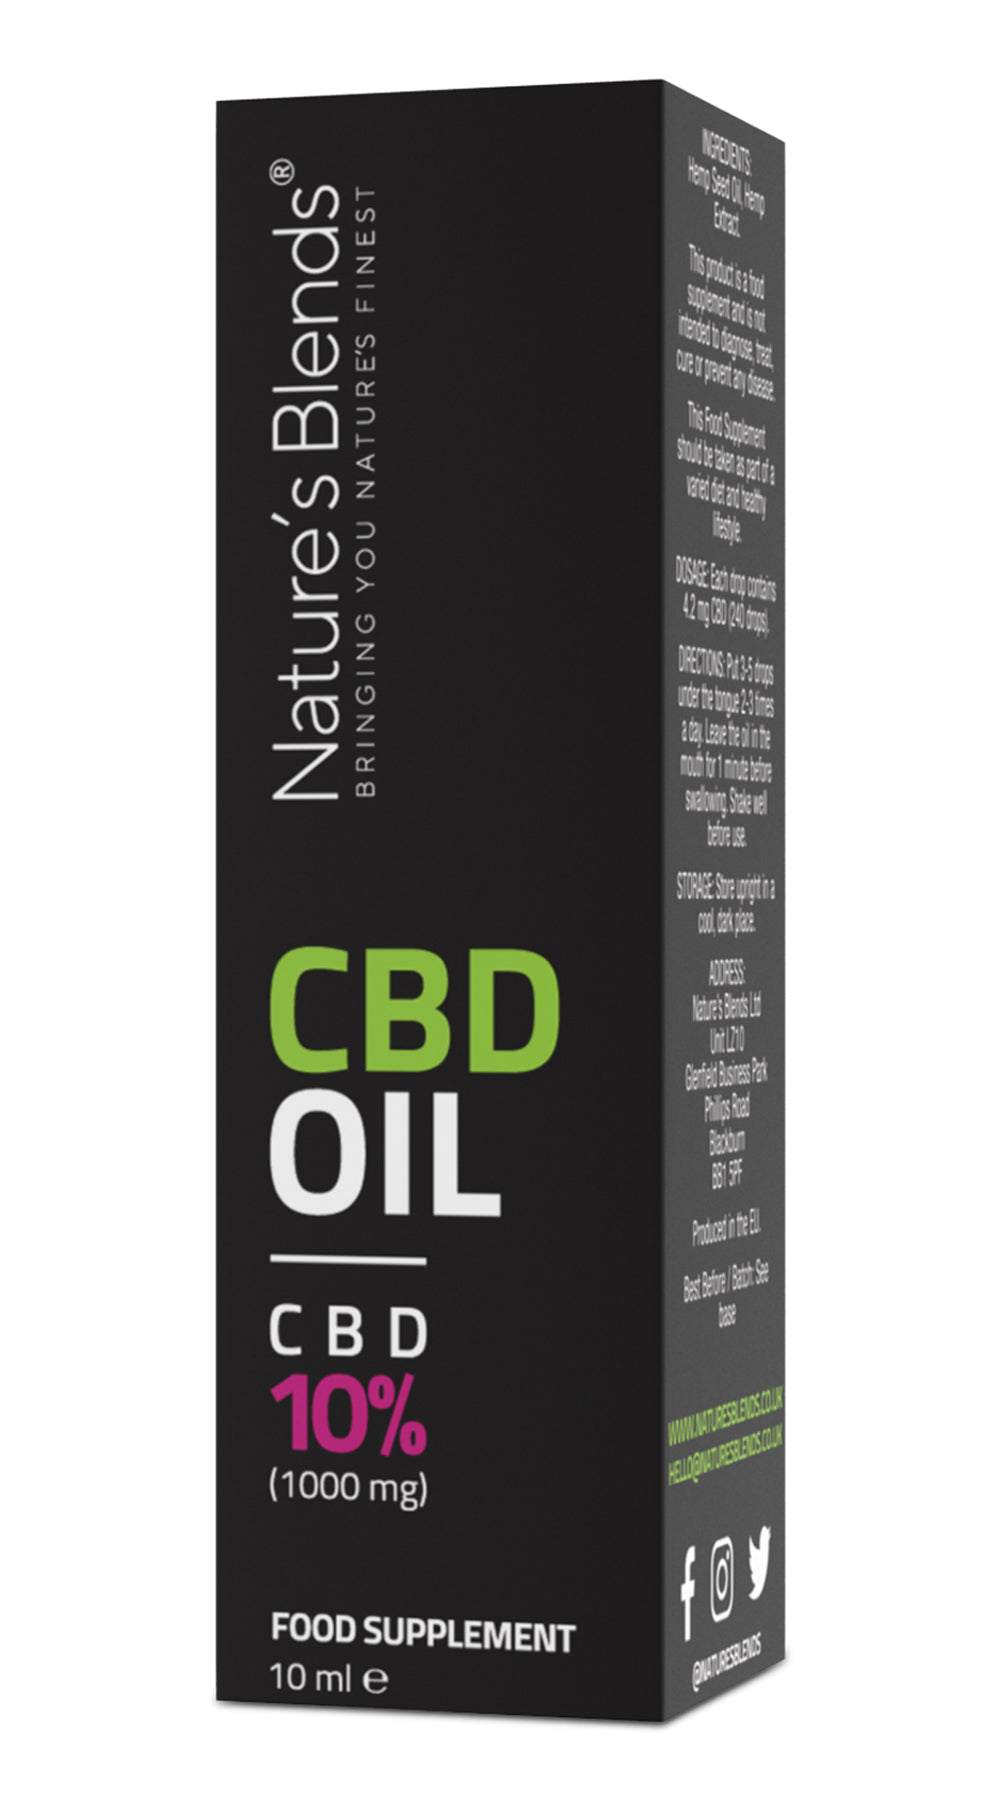 1000mg cbd oil packaging by natures blends